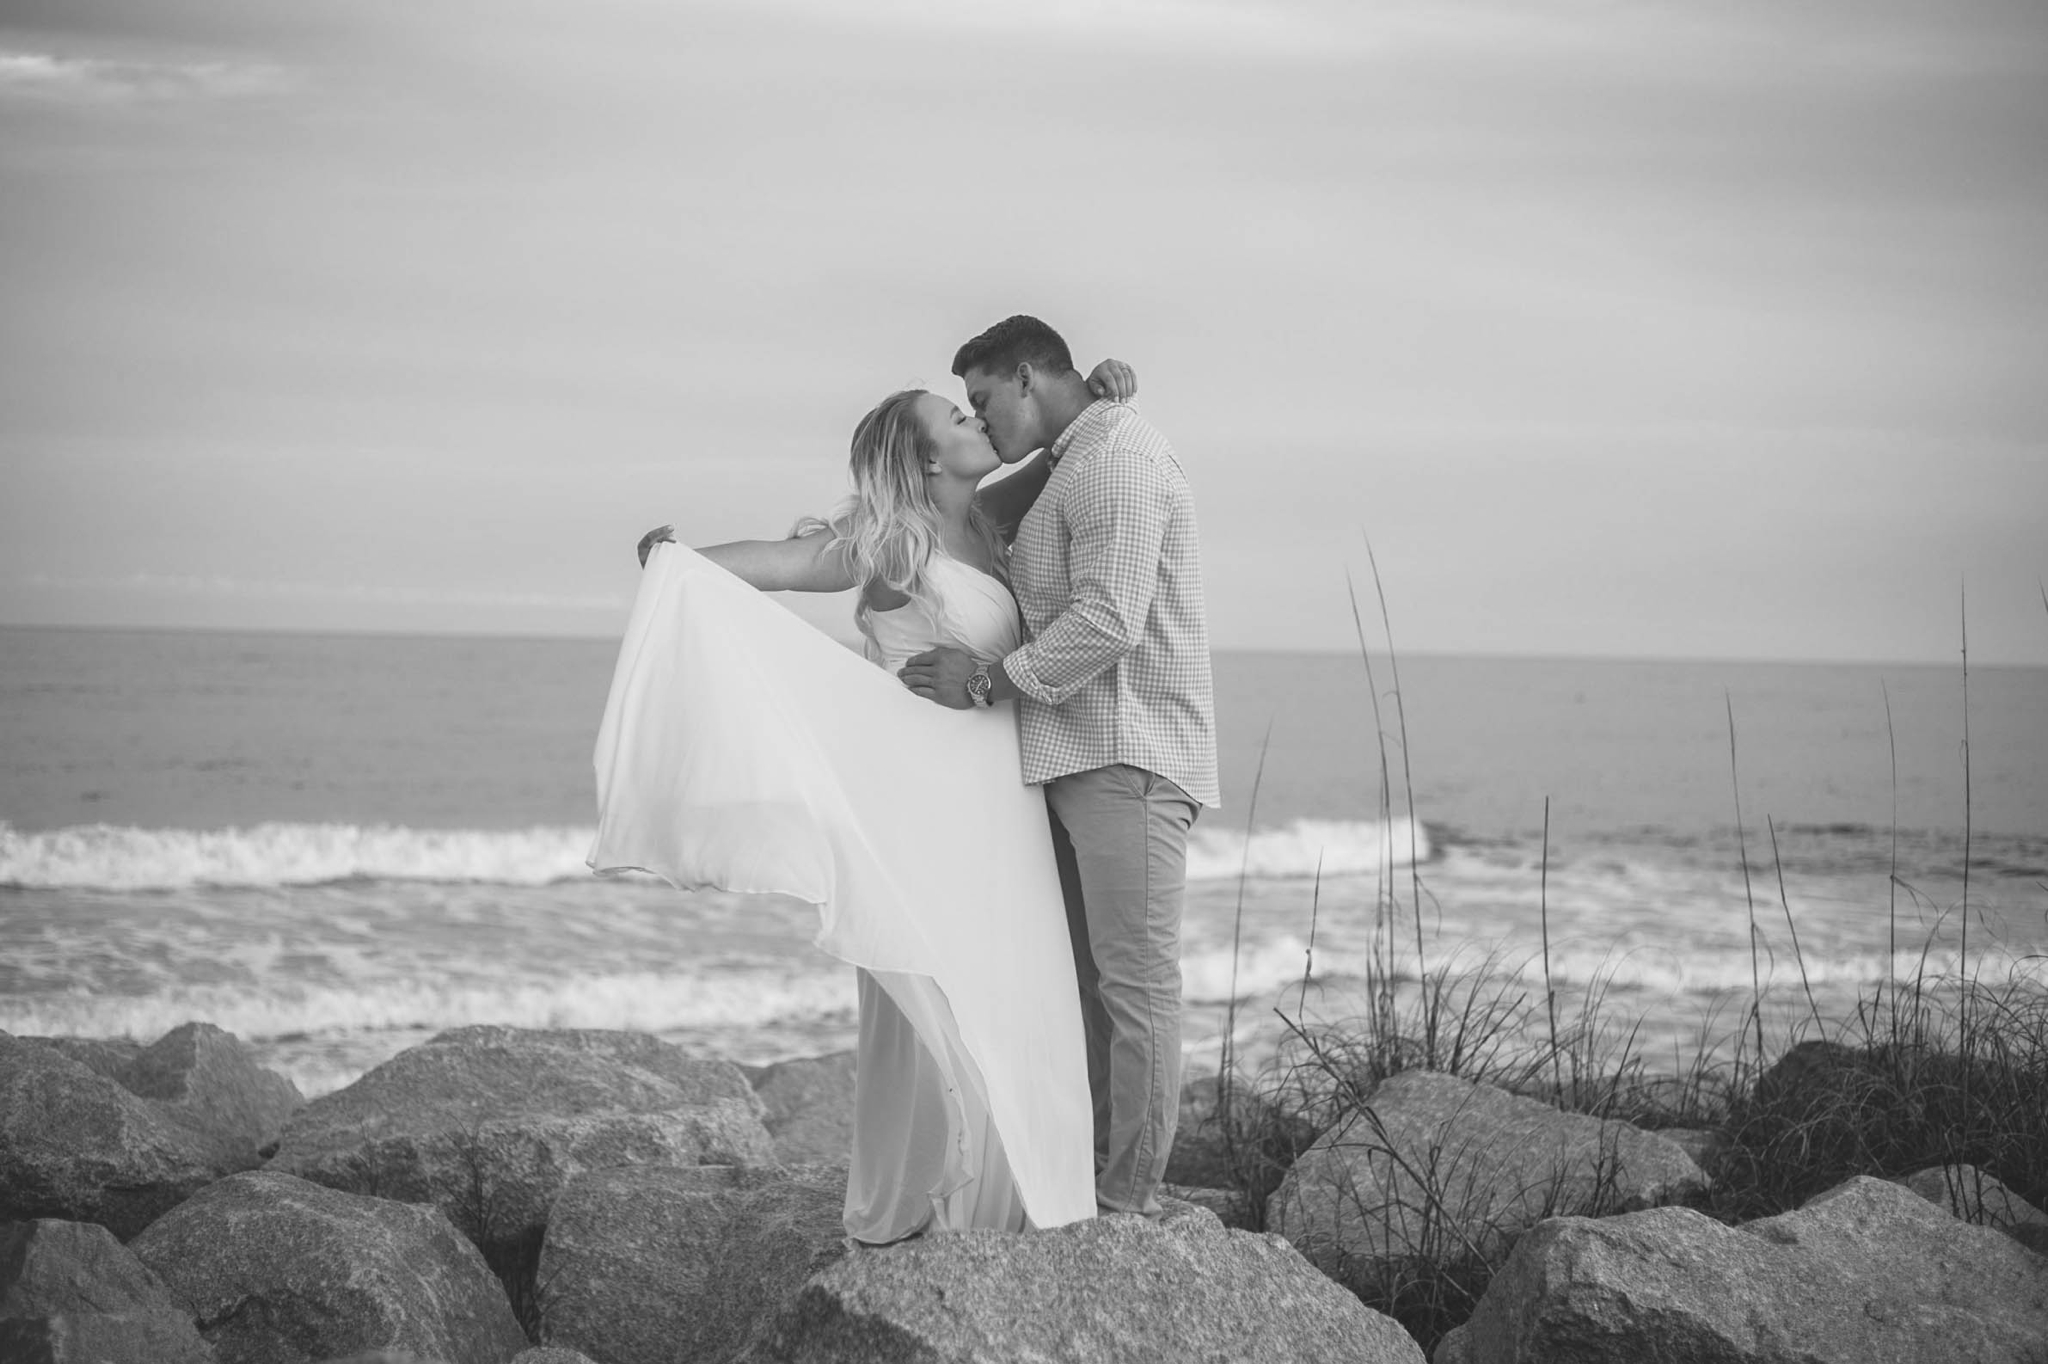 Black and White Engagement Photography Session at the beach on top of rocks  - couple is kissing - girl is wearing a white flowy maxi dress from lulus - Honolulu Oahu Hawaii Wedding Photographer - Johanna Dye